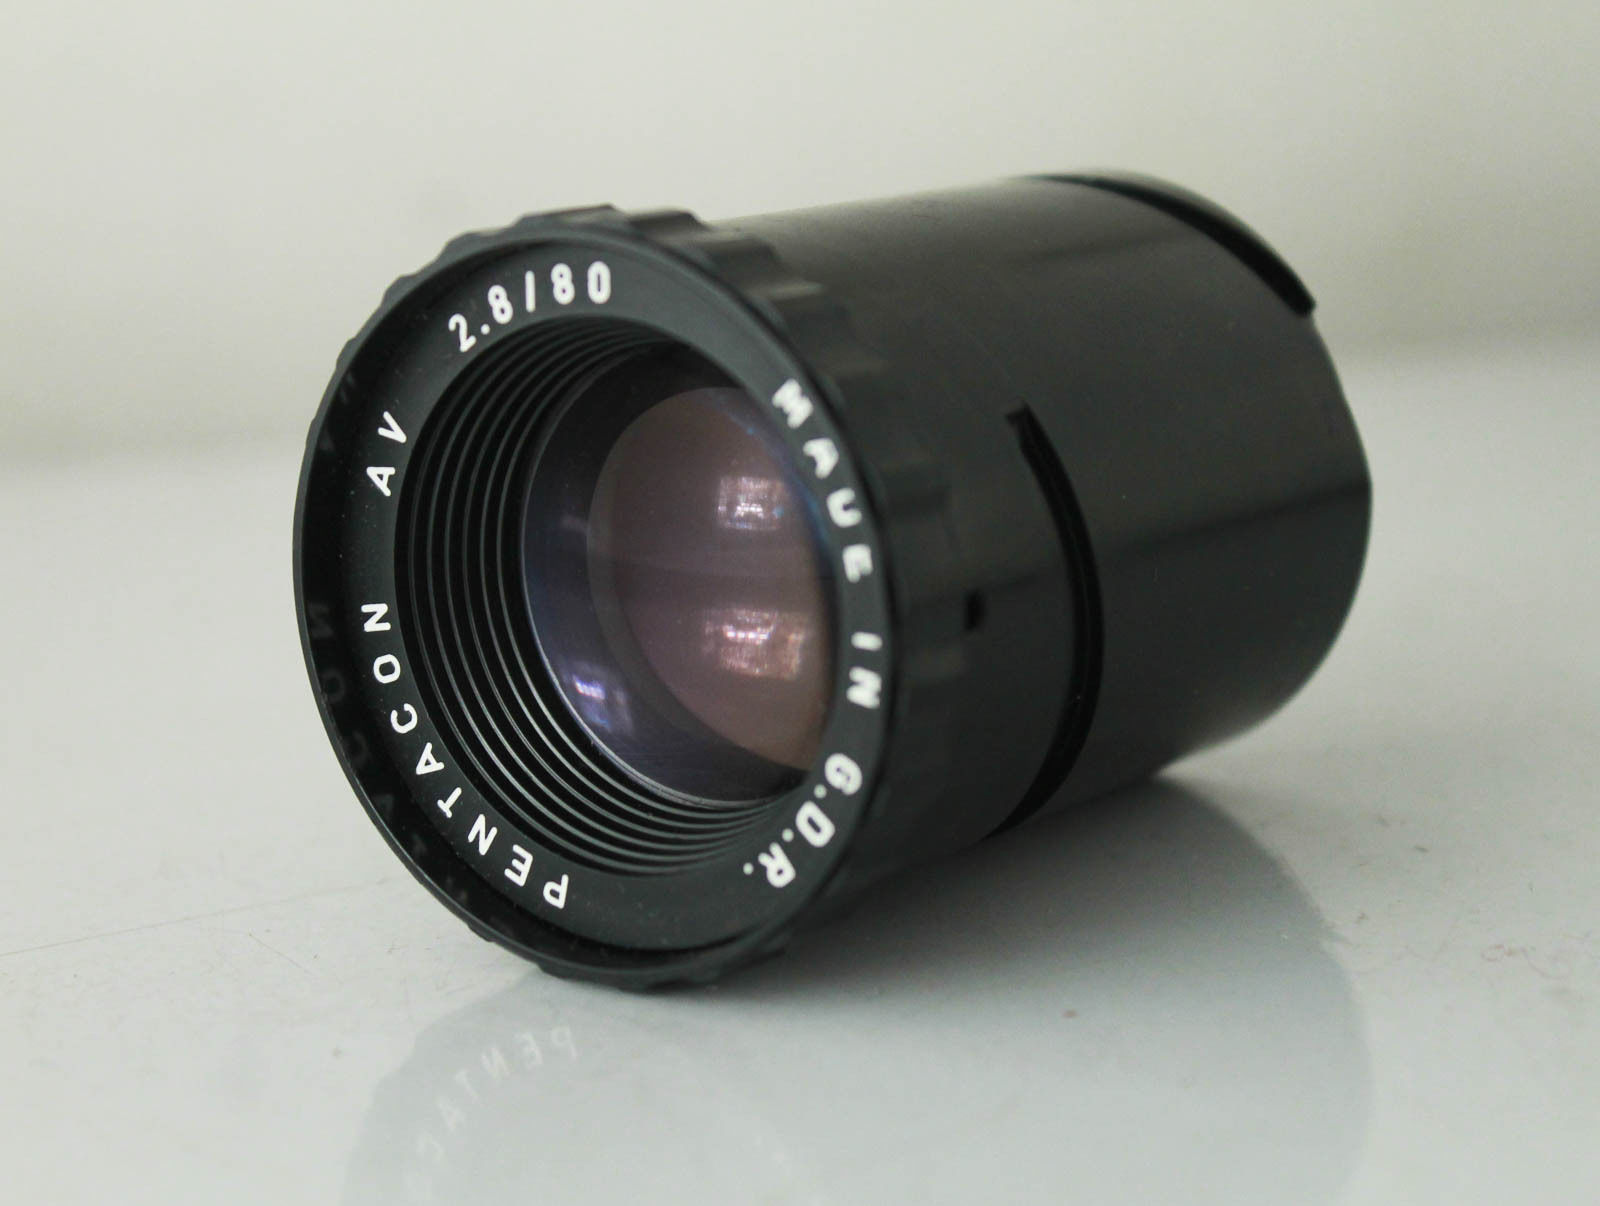 Picture of About the Lens Itself